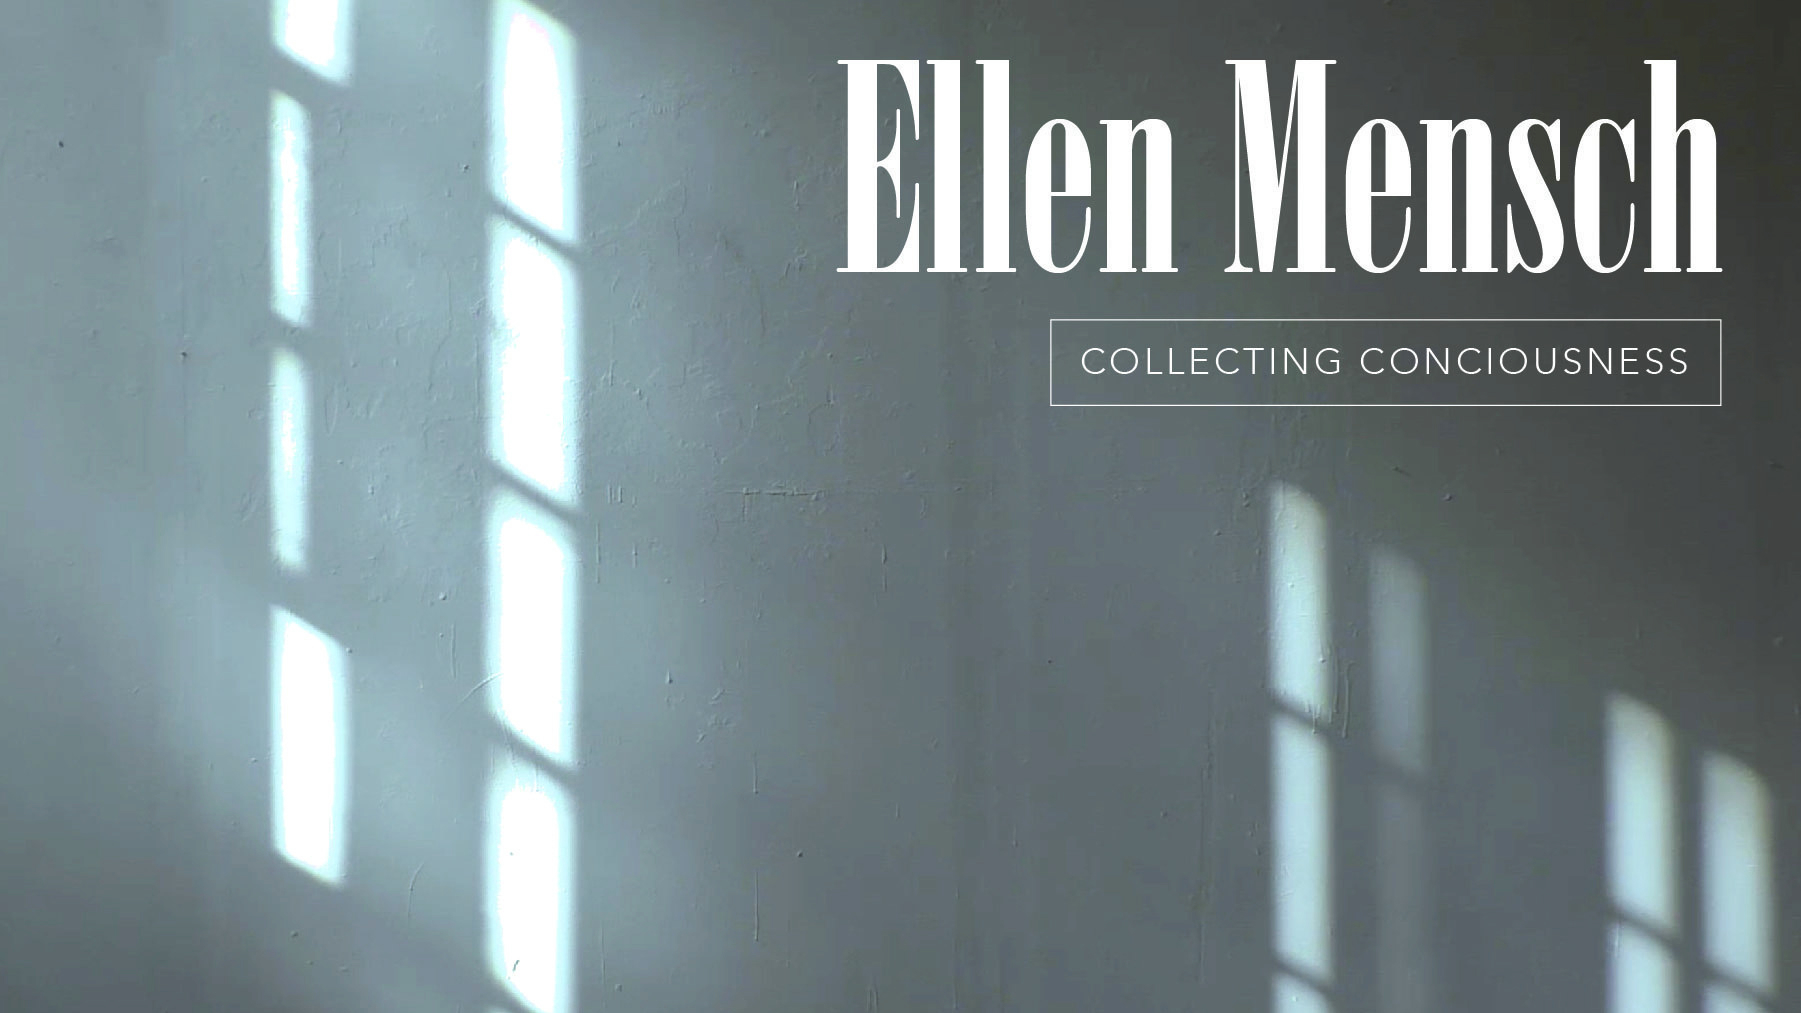 Ellen Mench, Collecting Consciousness